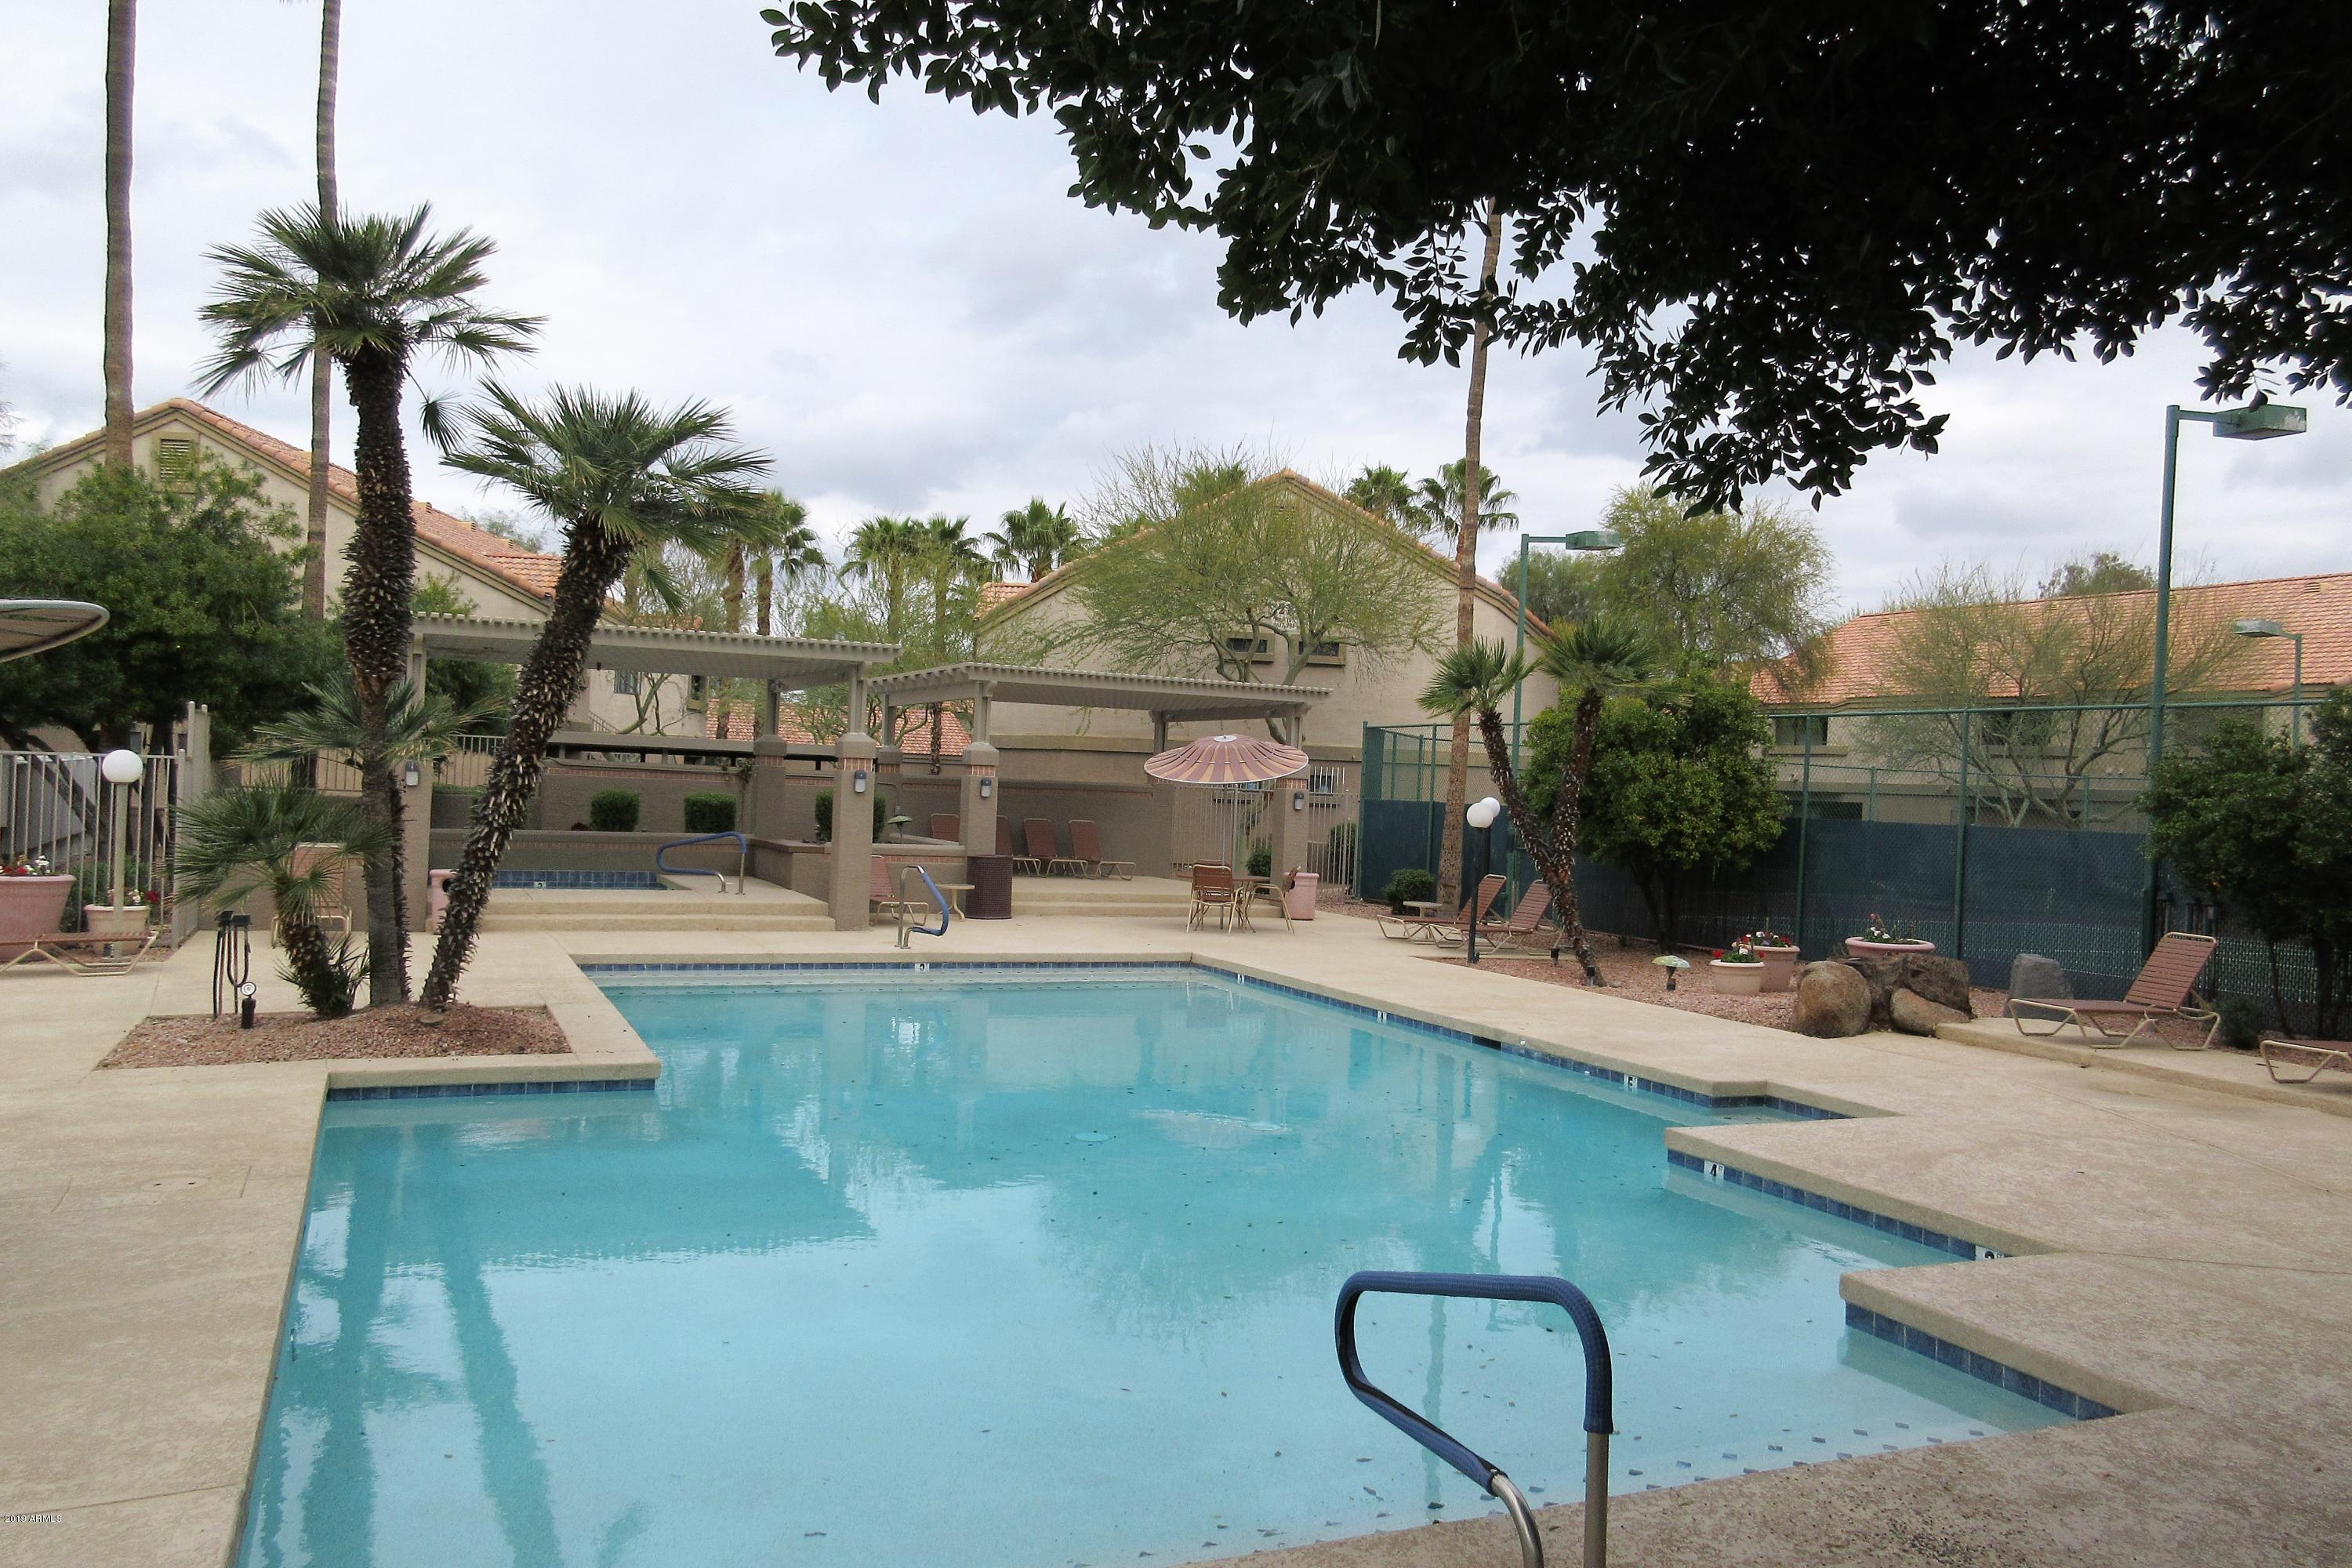 Photo of 1287 N ALMA SCHOOL Road #269, Chandler, AZ 85224